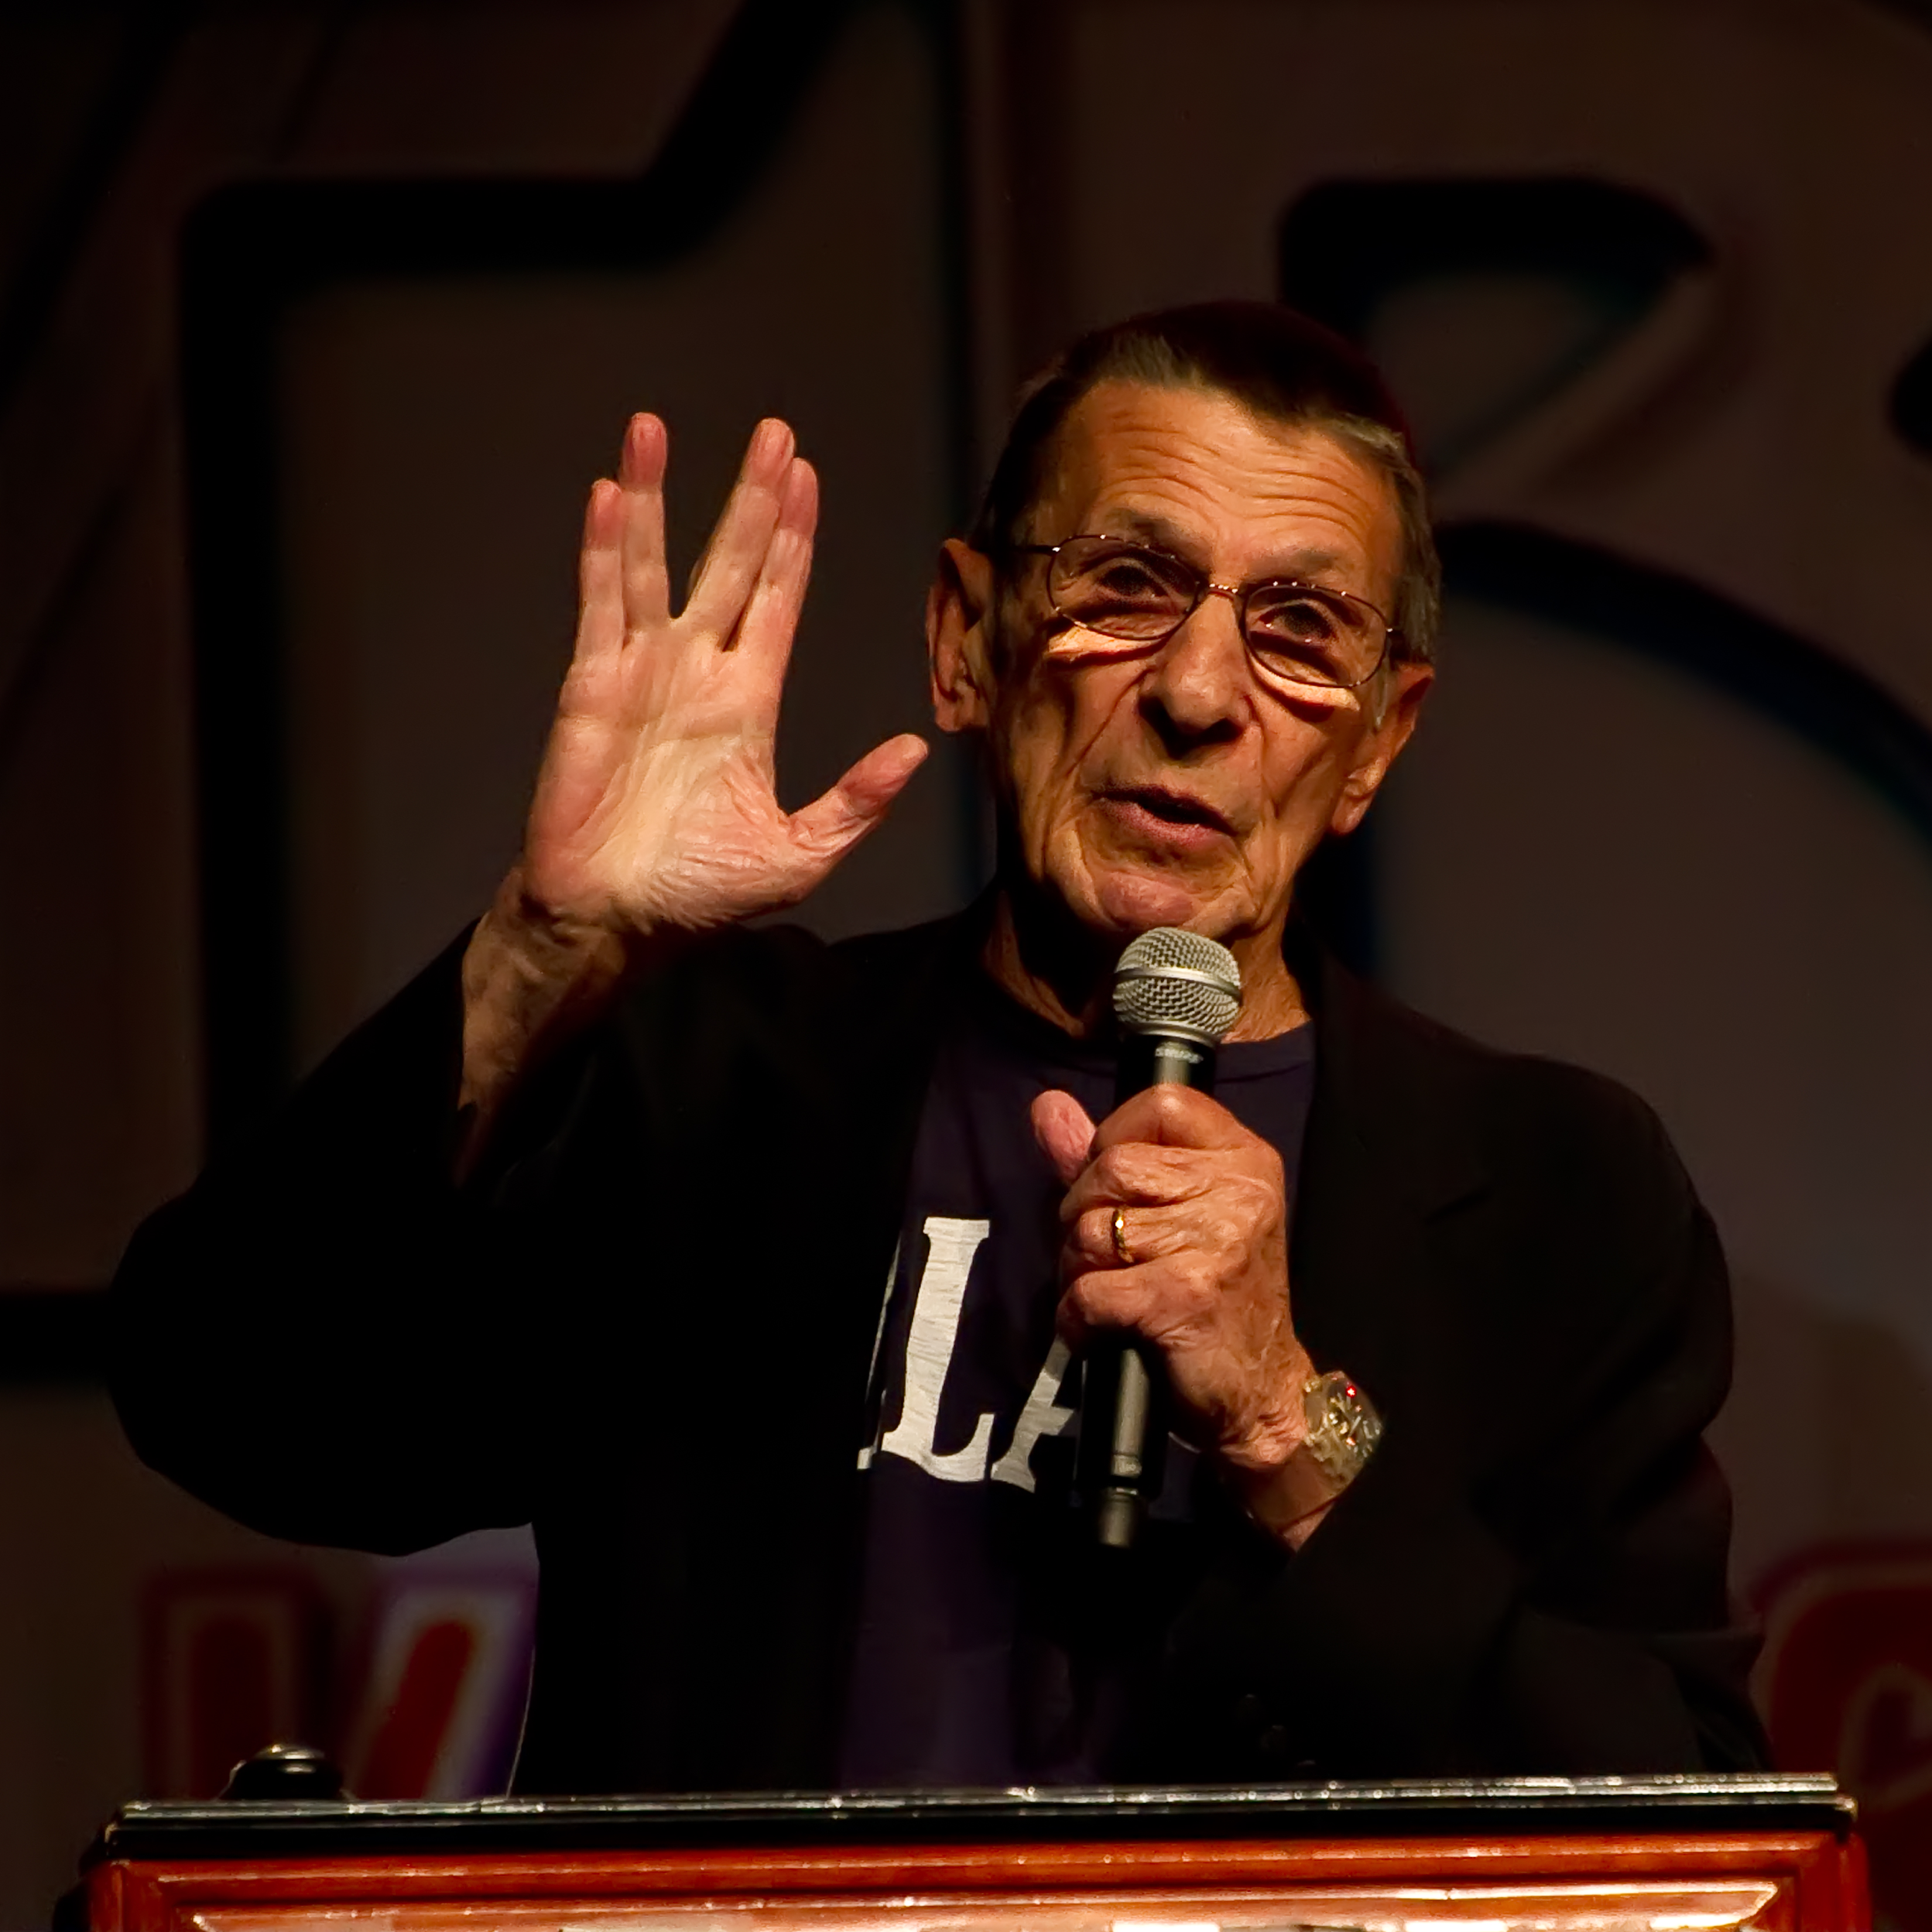 Leonard Nimoy giving a the Vulcan hand-sign for